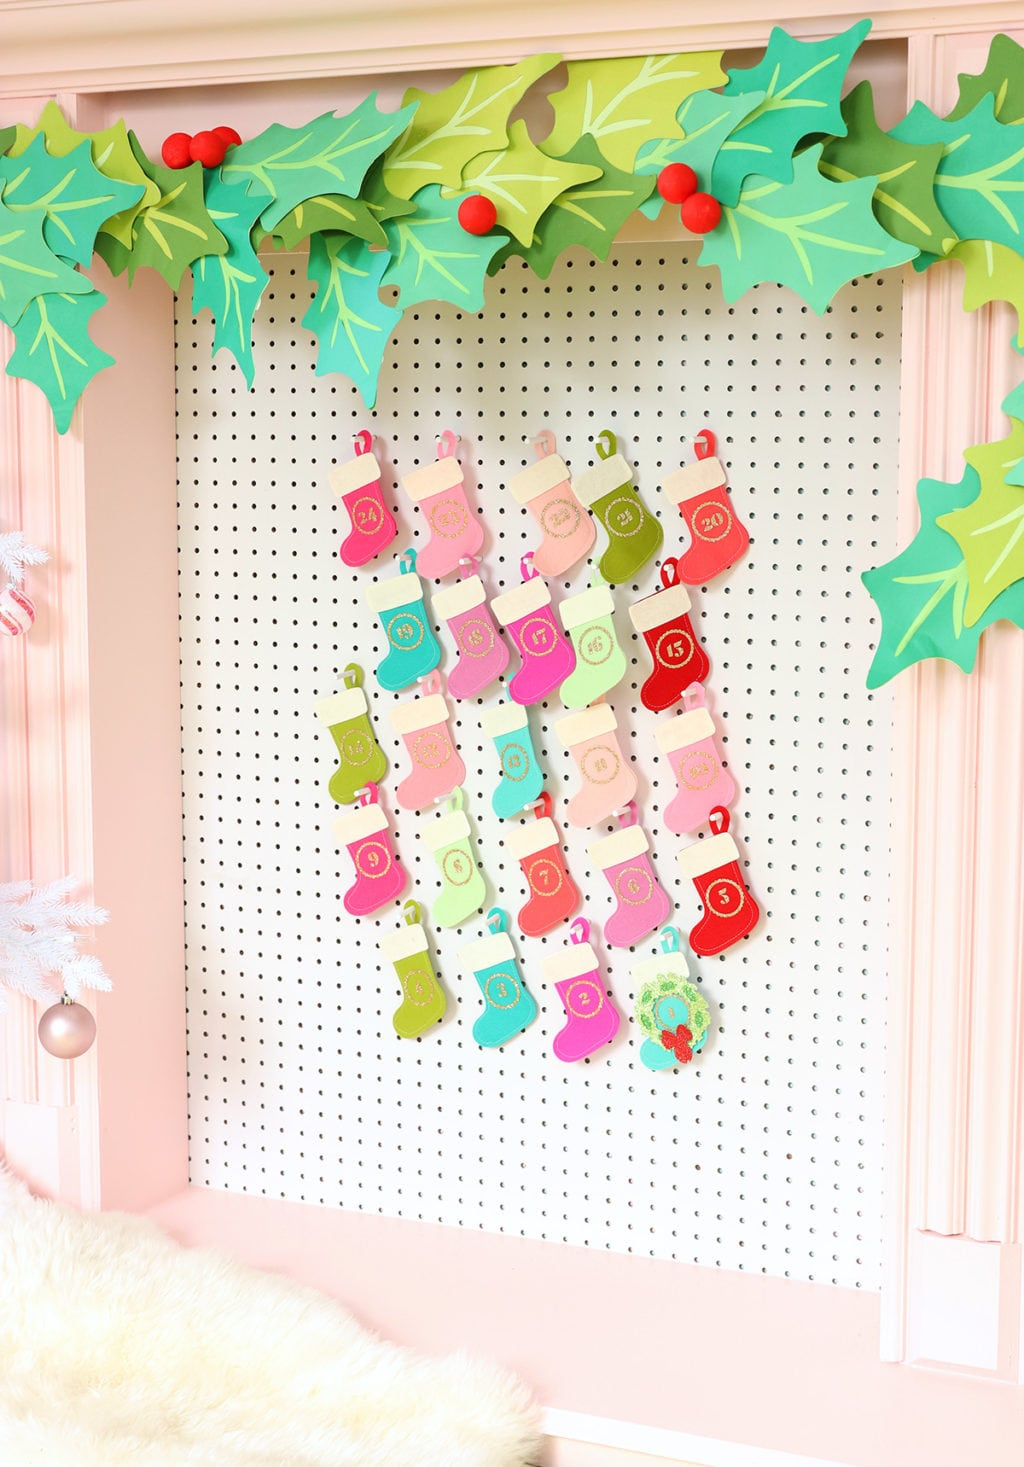 Pegboard Felt Stocking Advent Calendar with Cricut Maker | damask love